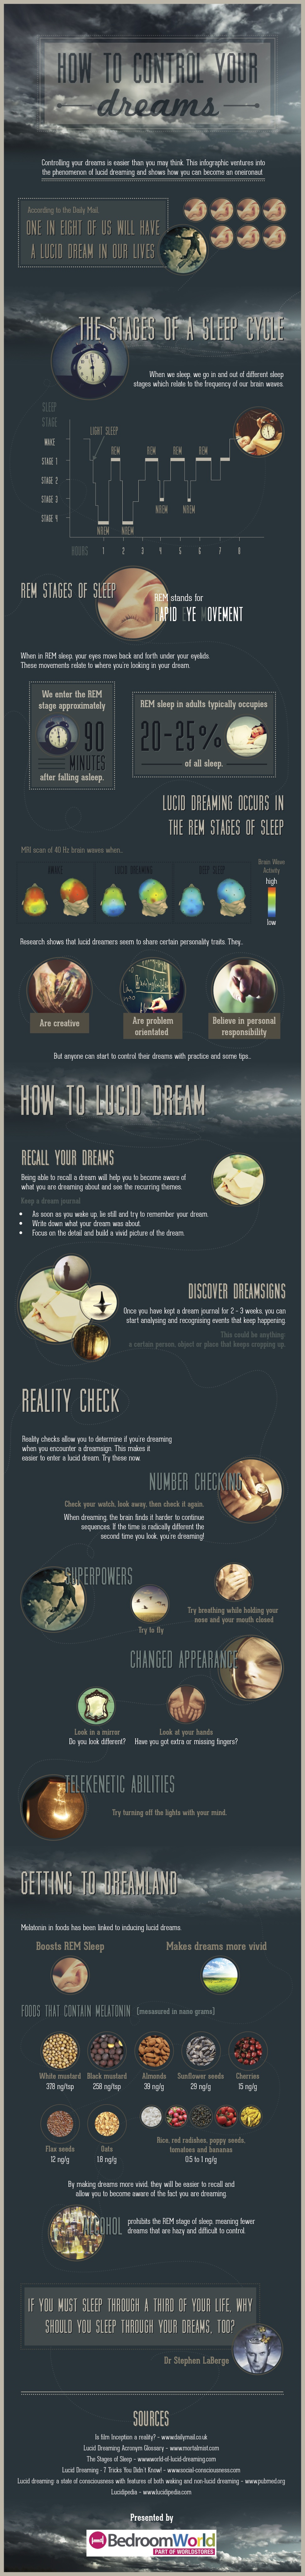 How To Train Yourself To Control Your Dreams